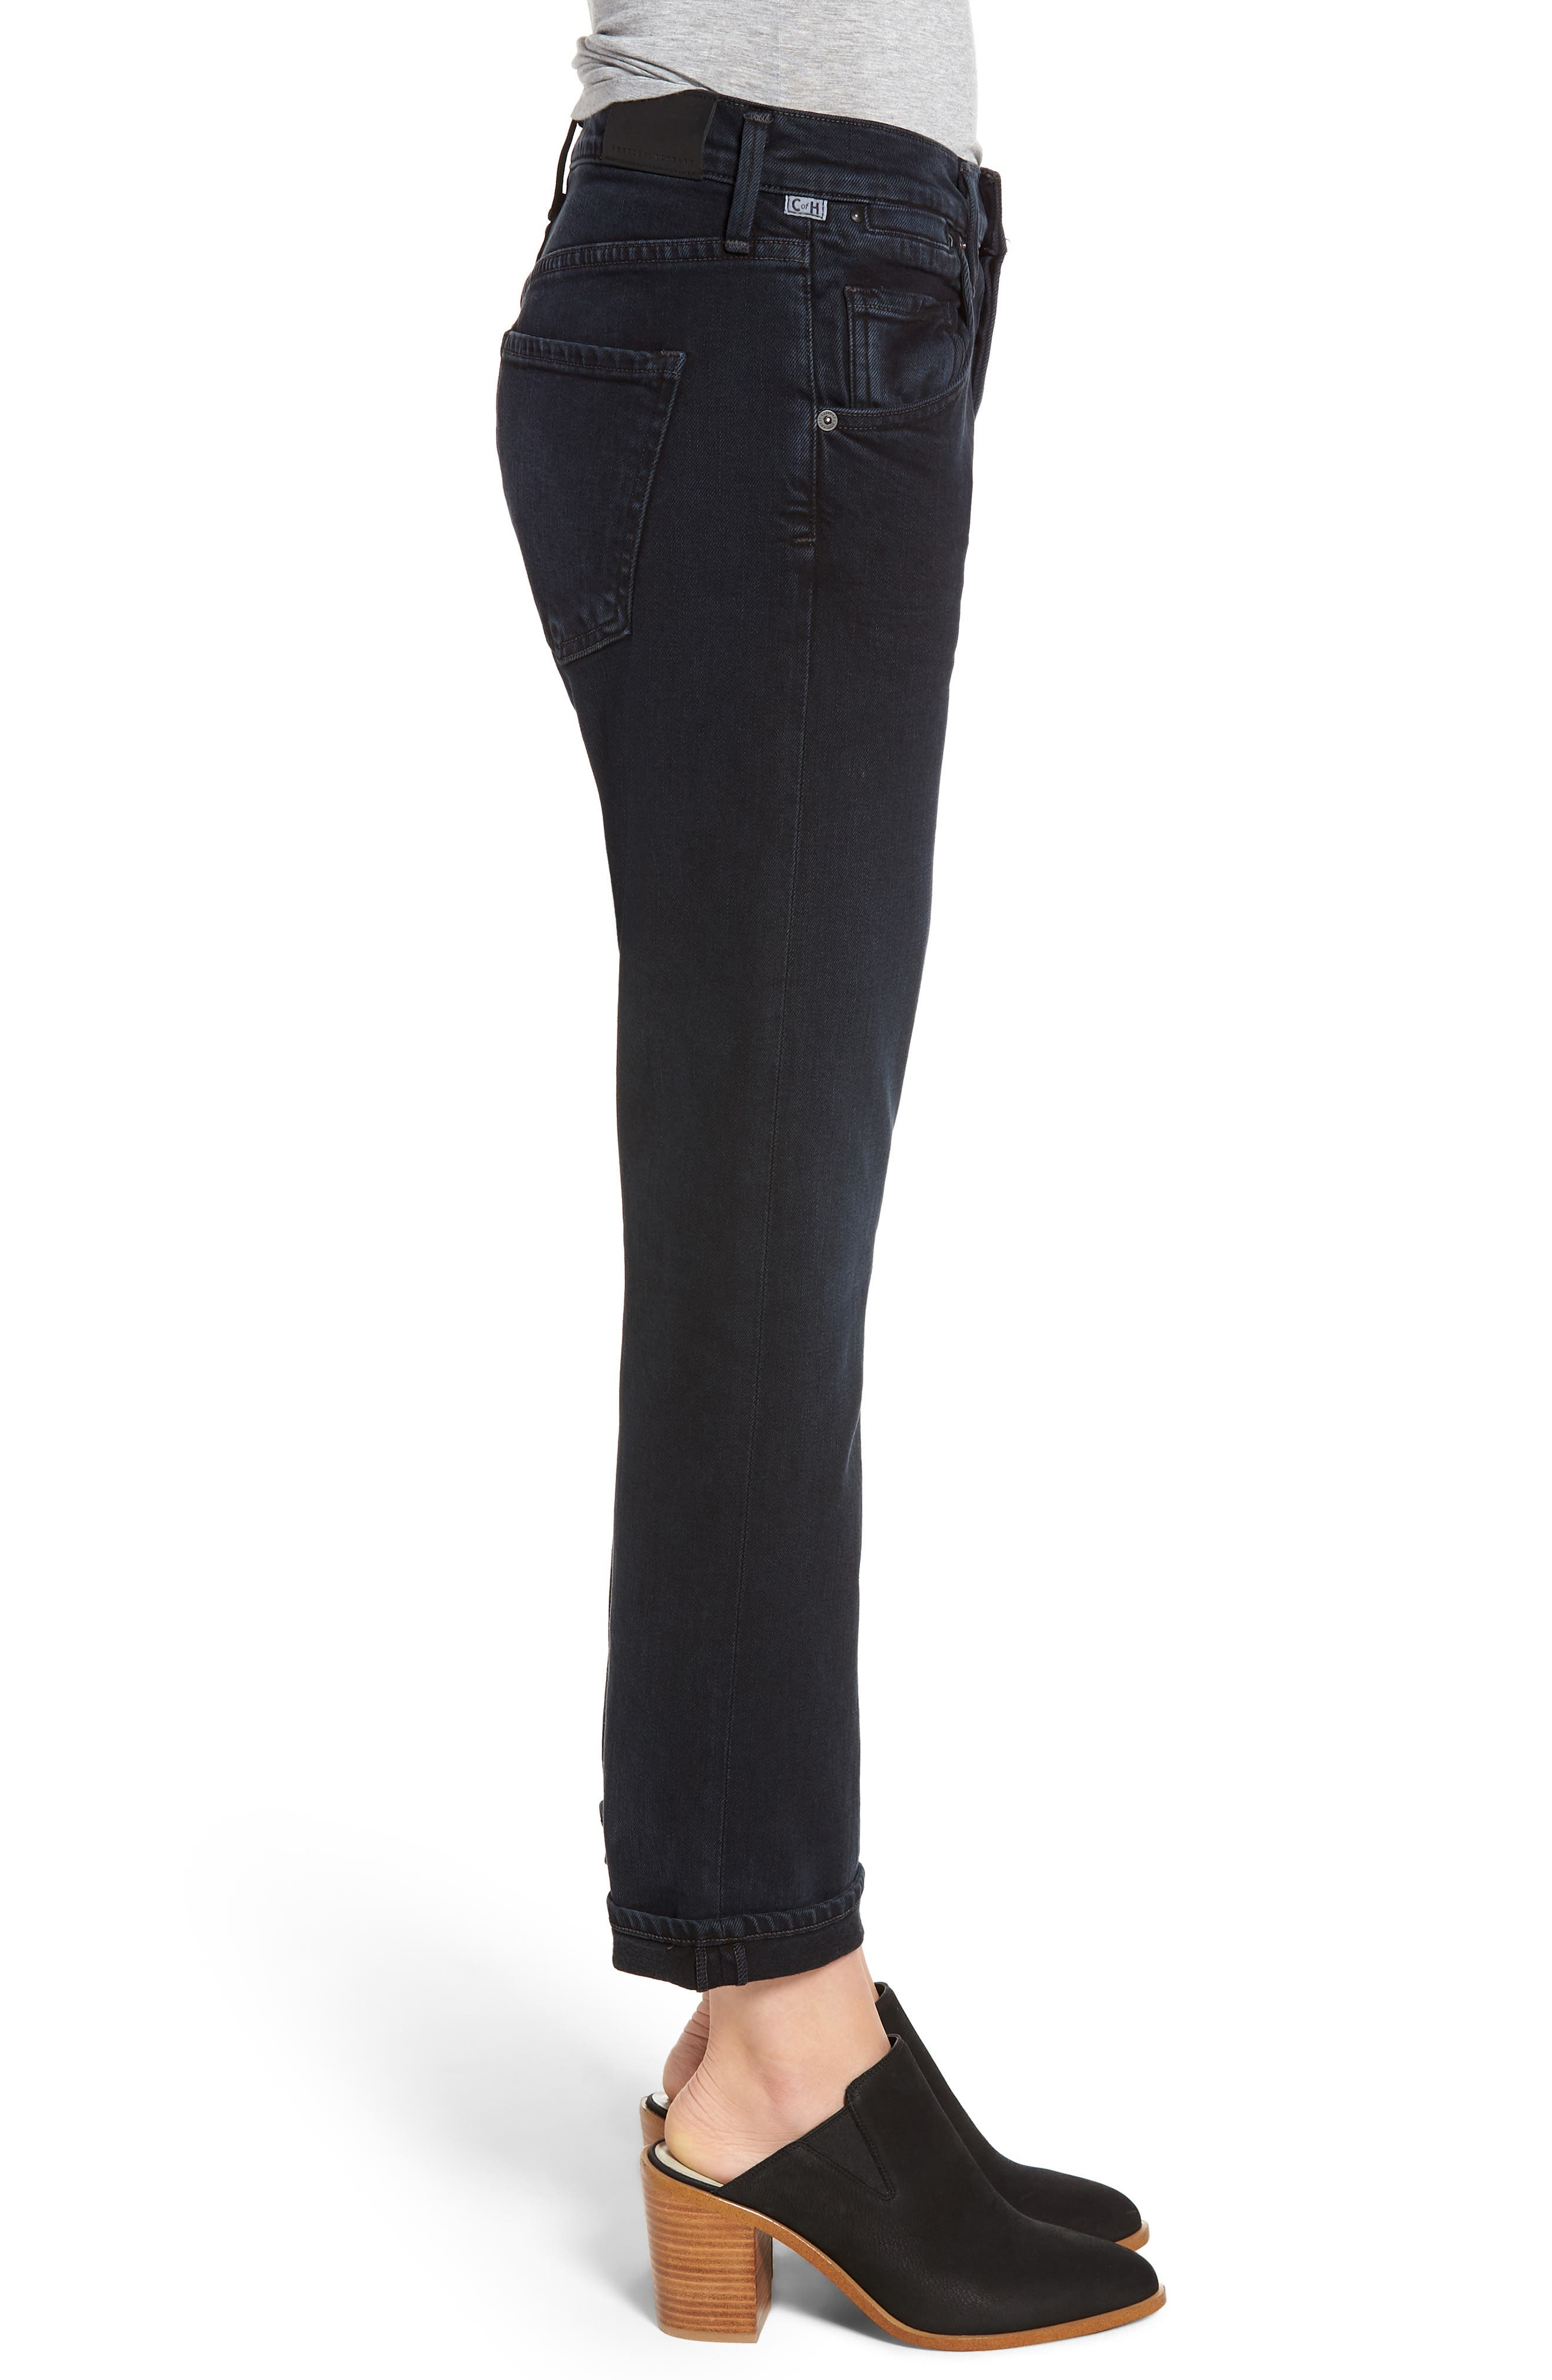 CITIZENS OF HUMANITY, Emerson Slim Boyfriend Jeans, Alternate thumbnail 4, color, NIGHT SHADE